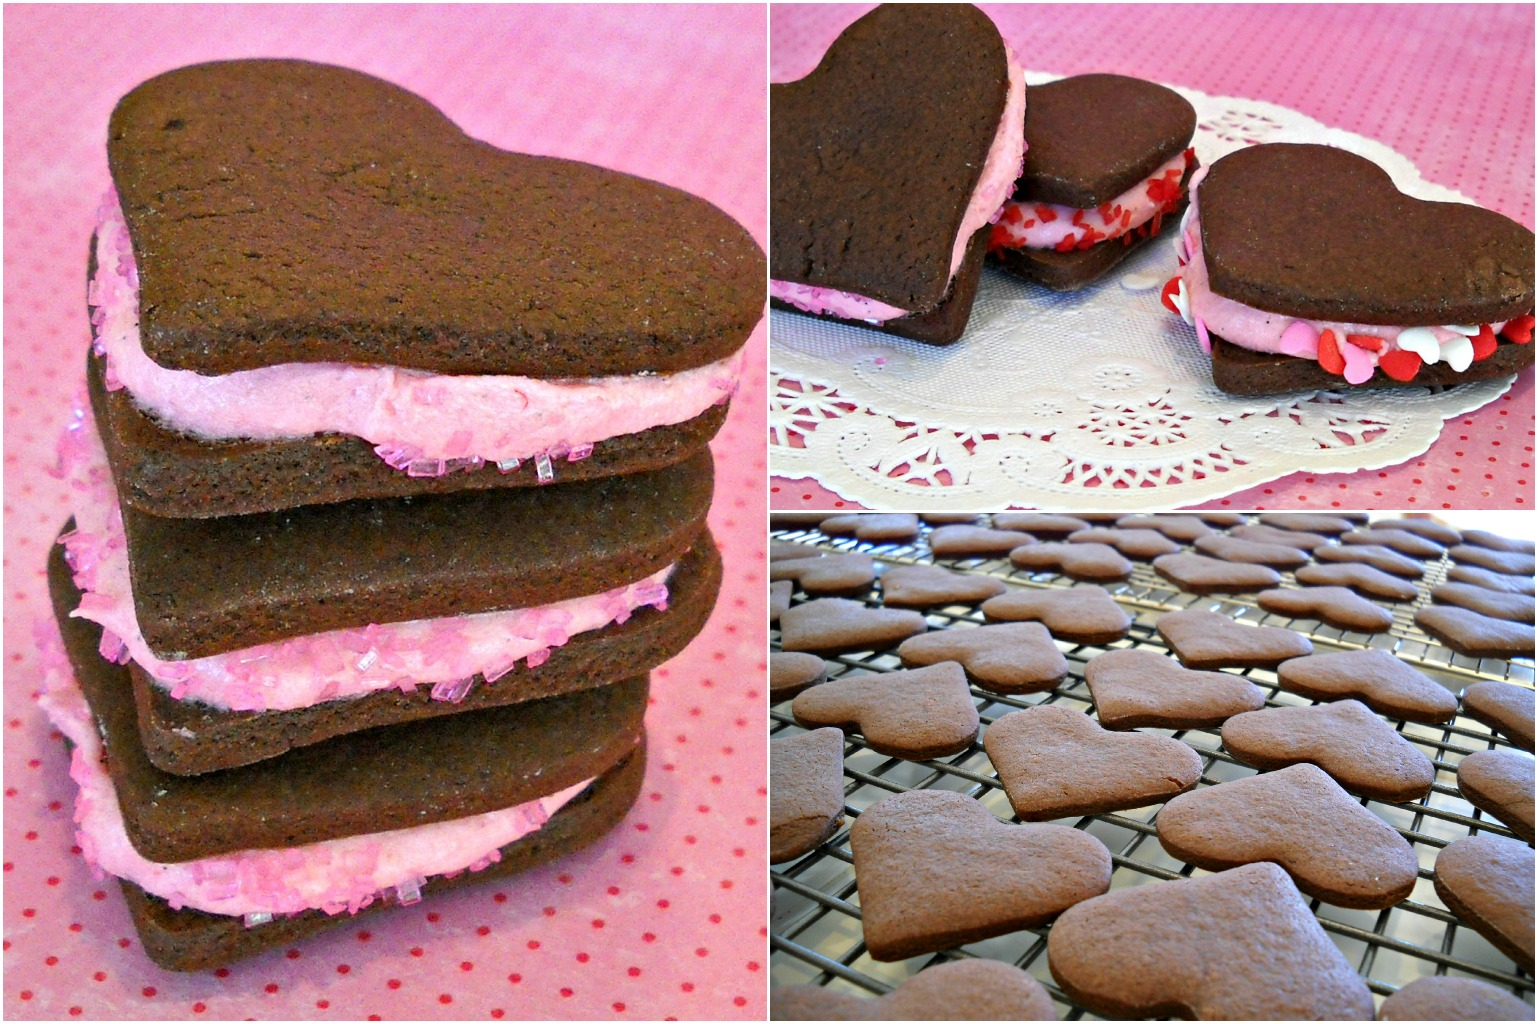 Bake It With Booze!: Chocolate Heart Sandwich Cookies